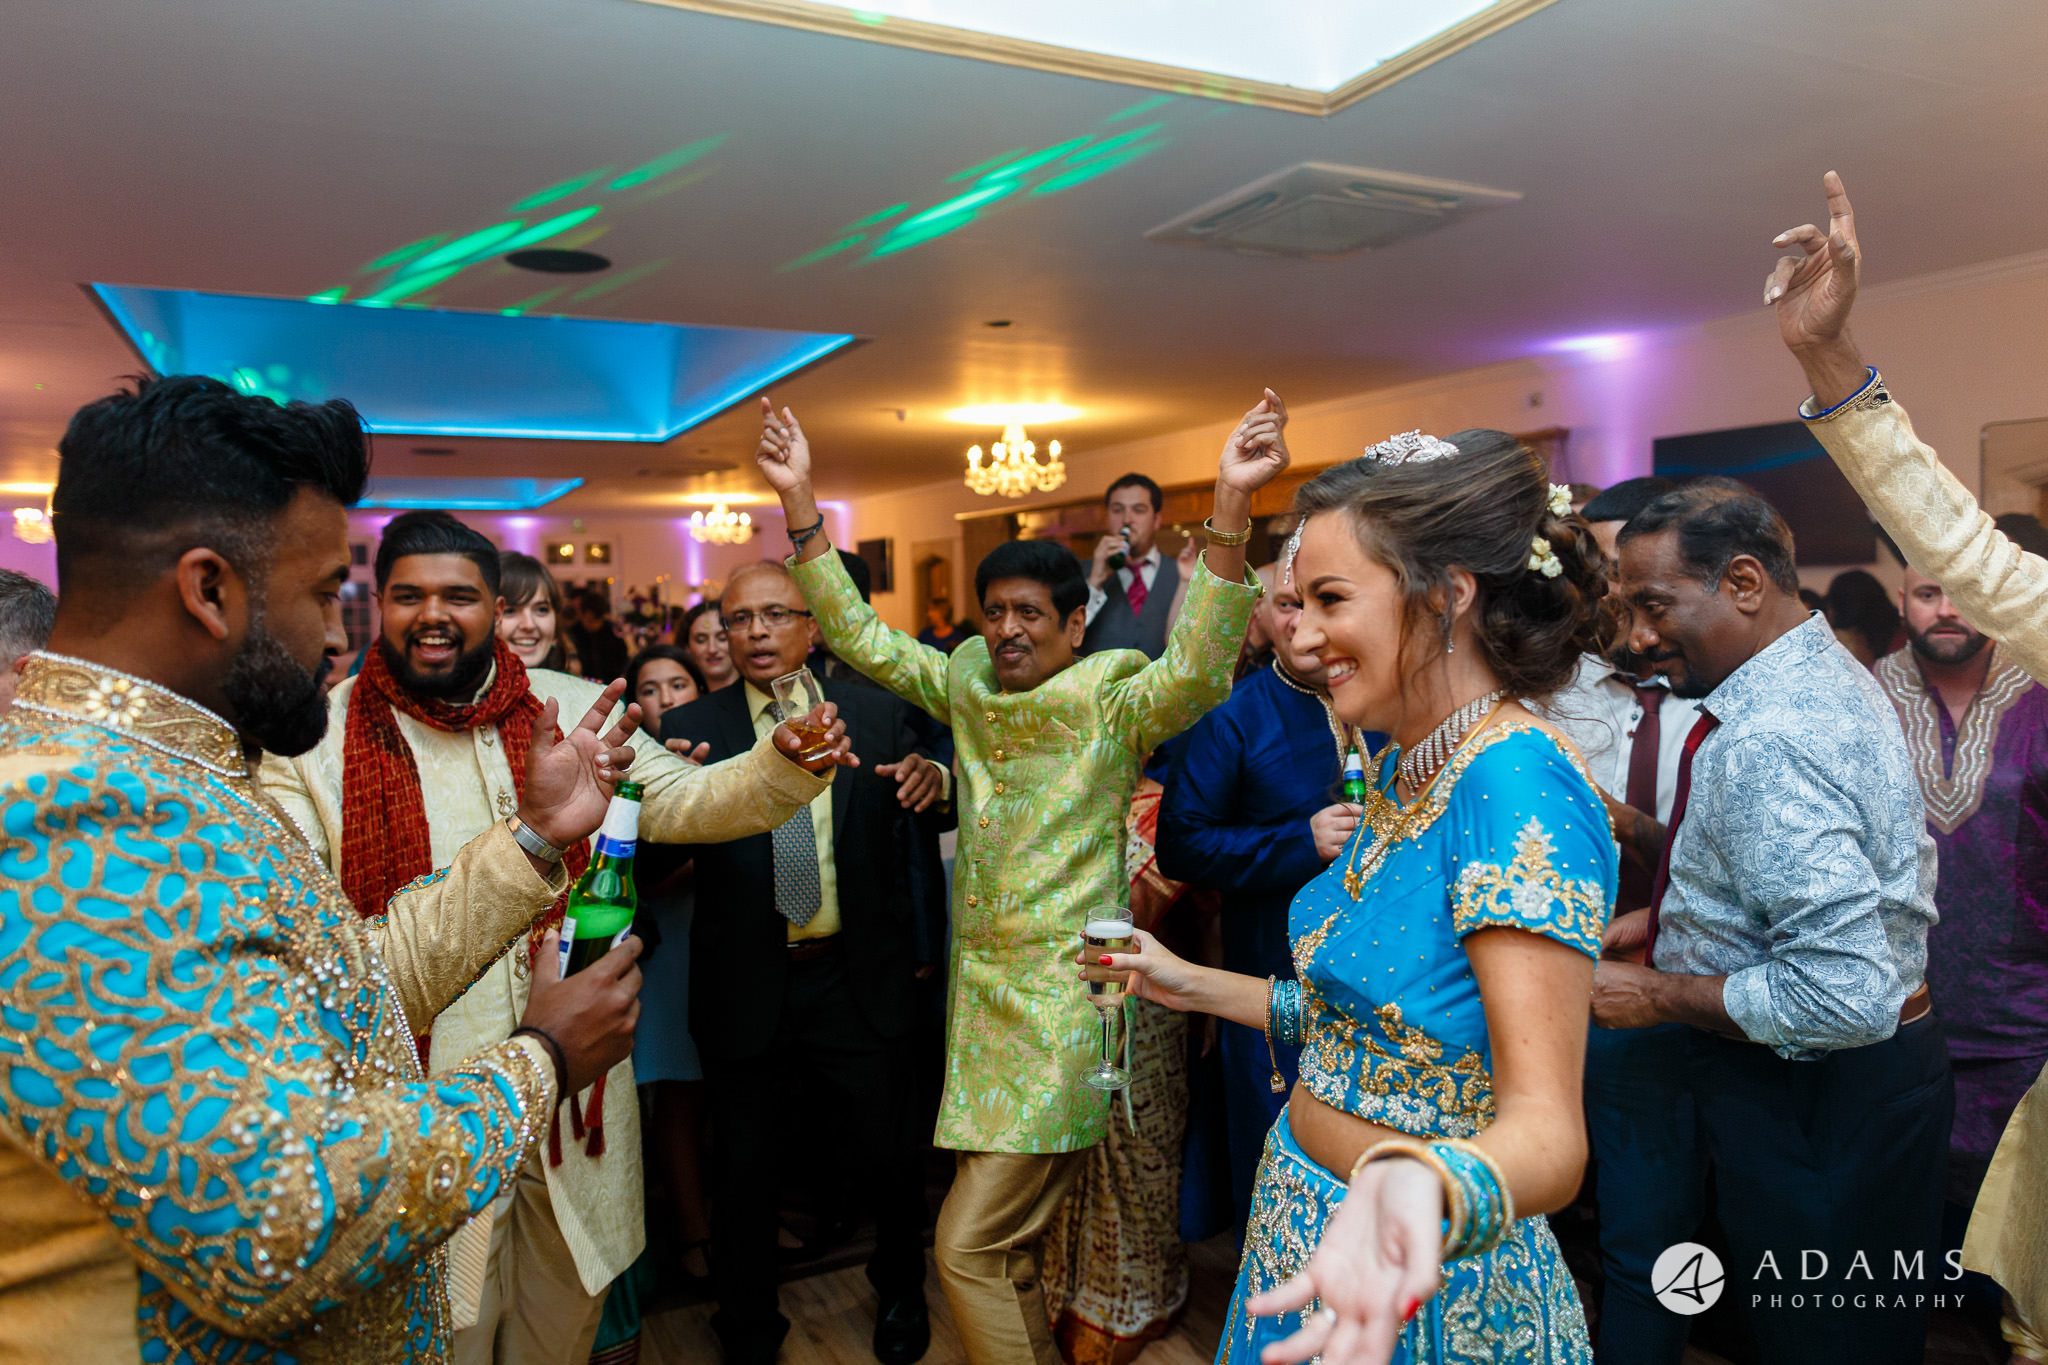 walled garden orchardleigh wedding photography bride and groom dance